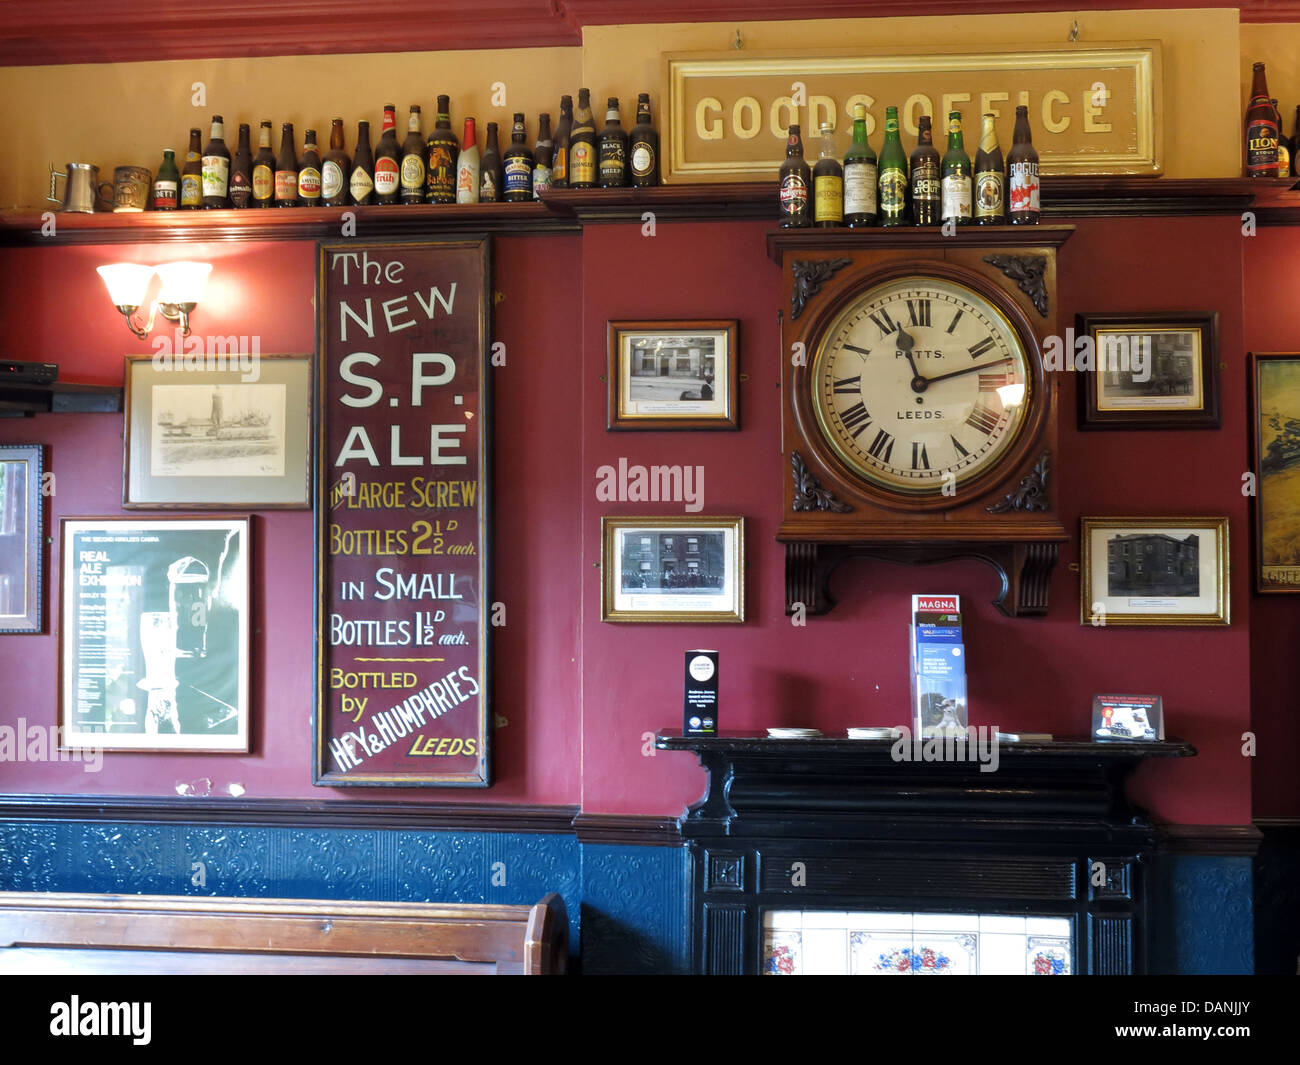 The,West,Riding,Pub,Dewsbury,Station,The,Ale,Train,from,Stalybridge,to,Batley,real,ales,pub,public,house,interior,inside,refreshment,rooms,room,West,yorkshire,sign,train,plate,railway,CAMRA,world,beers,waiting,room,platform,2,two,real,cask,ales,goods,office,clock,fireplace,fire,place,interior,gotonysmith The West Riding,Platform Two,Dewsbury Station,Wellington Road,Dewsbury,West Yorkshire. WF13 1HF WF131HF inside the,Buy Pictures of,Buy Images Of